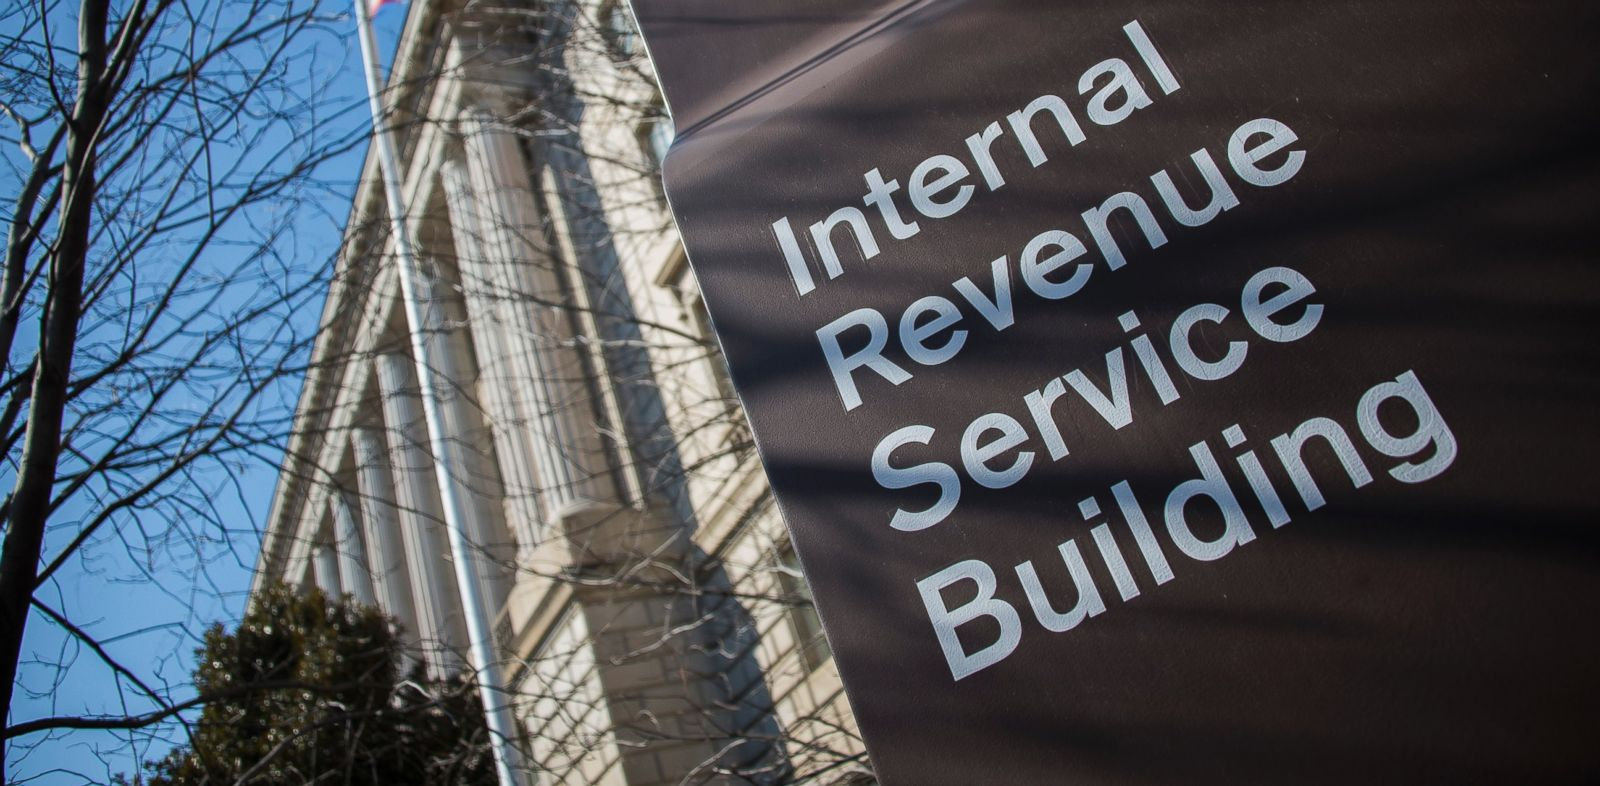 PHOTO: The Internal Revenue Service (IRS) building is viewed in Washington, DC, February 19, 2014.